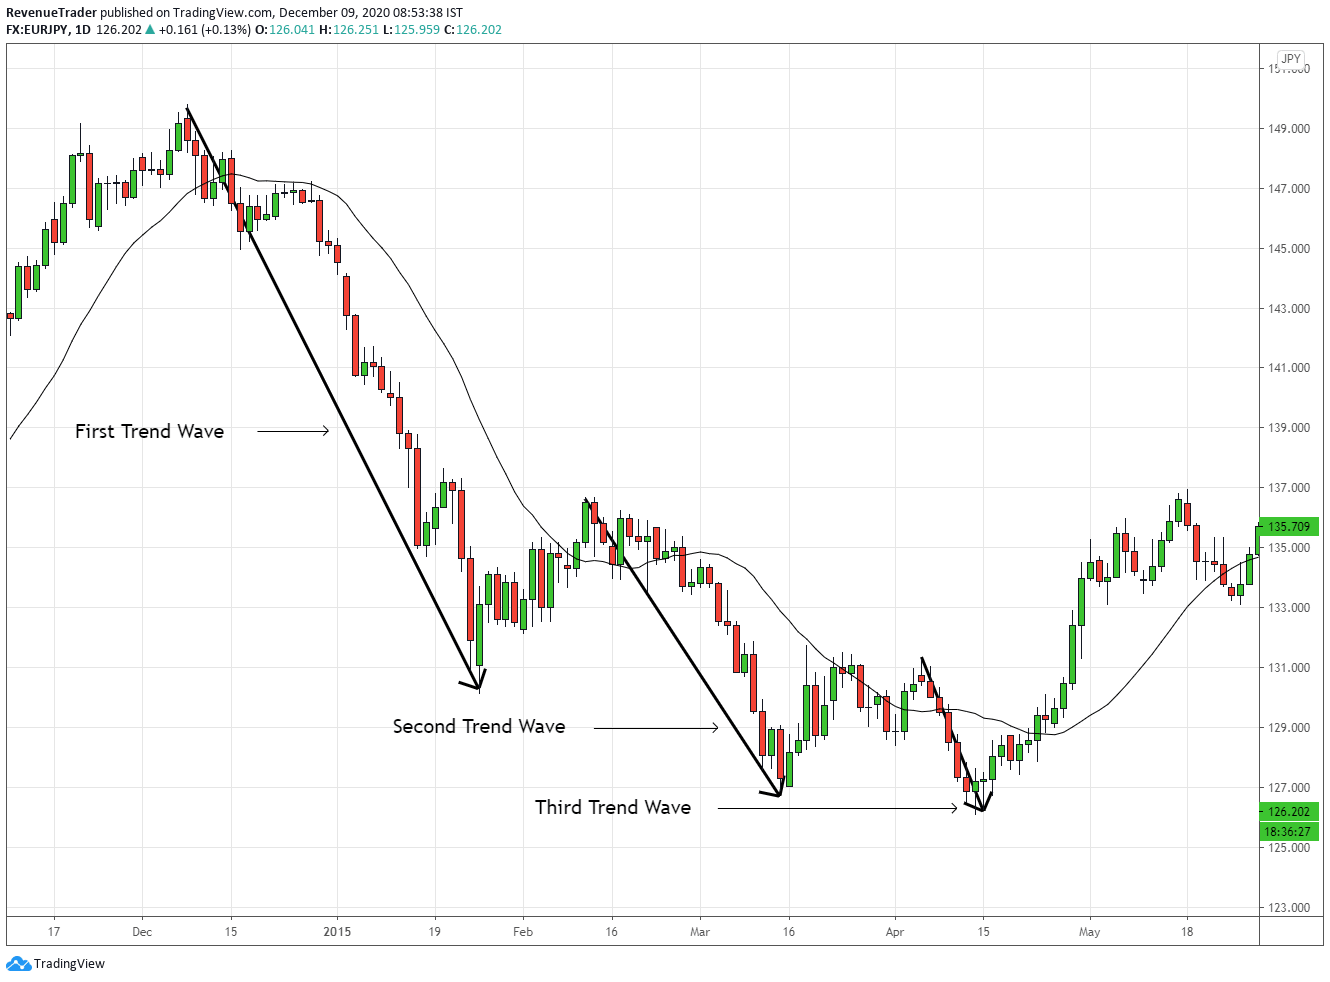 How to identify trend reversal by observing trend wave